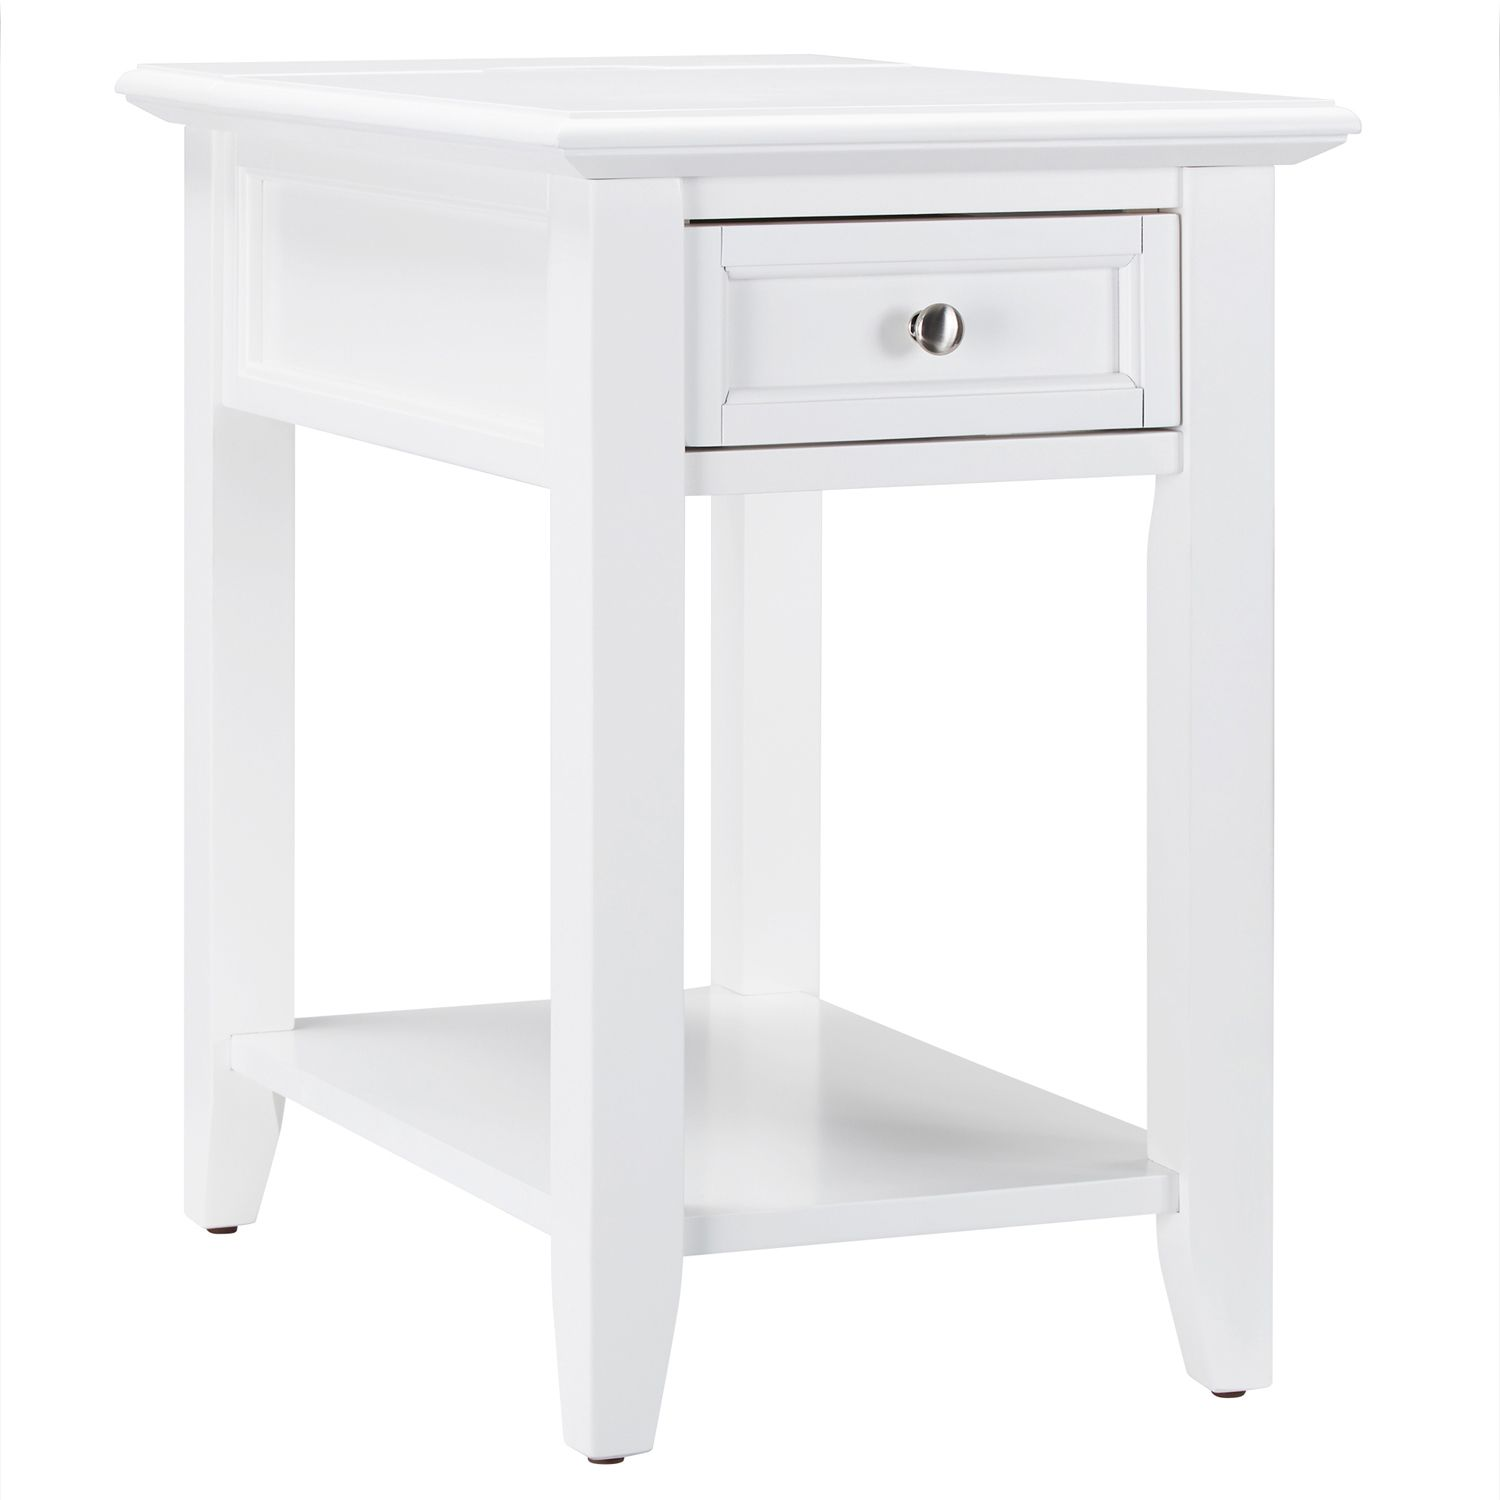 white single drawer end table with power strip living room accent bedroom tables dark oak side shell lamp coffee bar pub set pottery barn dining chairs gold decor black nest